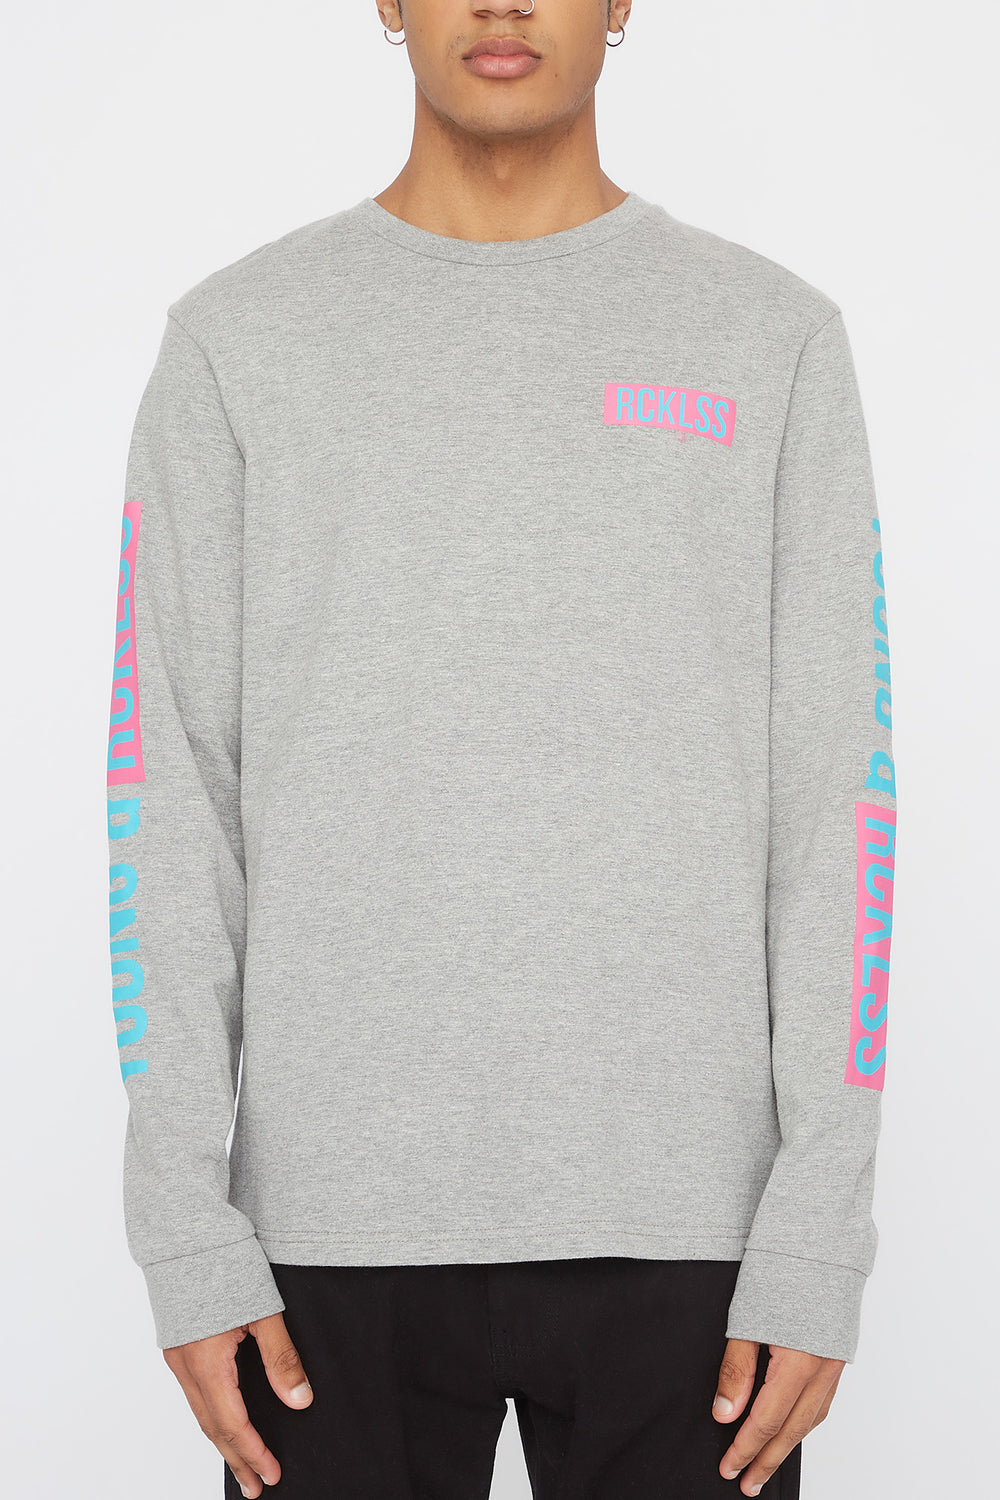 Young & Reckless Mens Neon Logos Long Sleeve Shirt Heather Grey